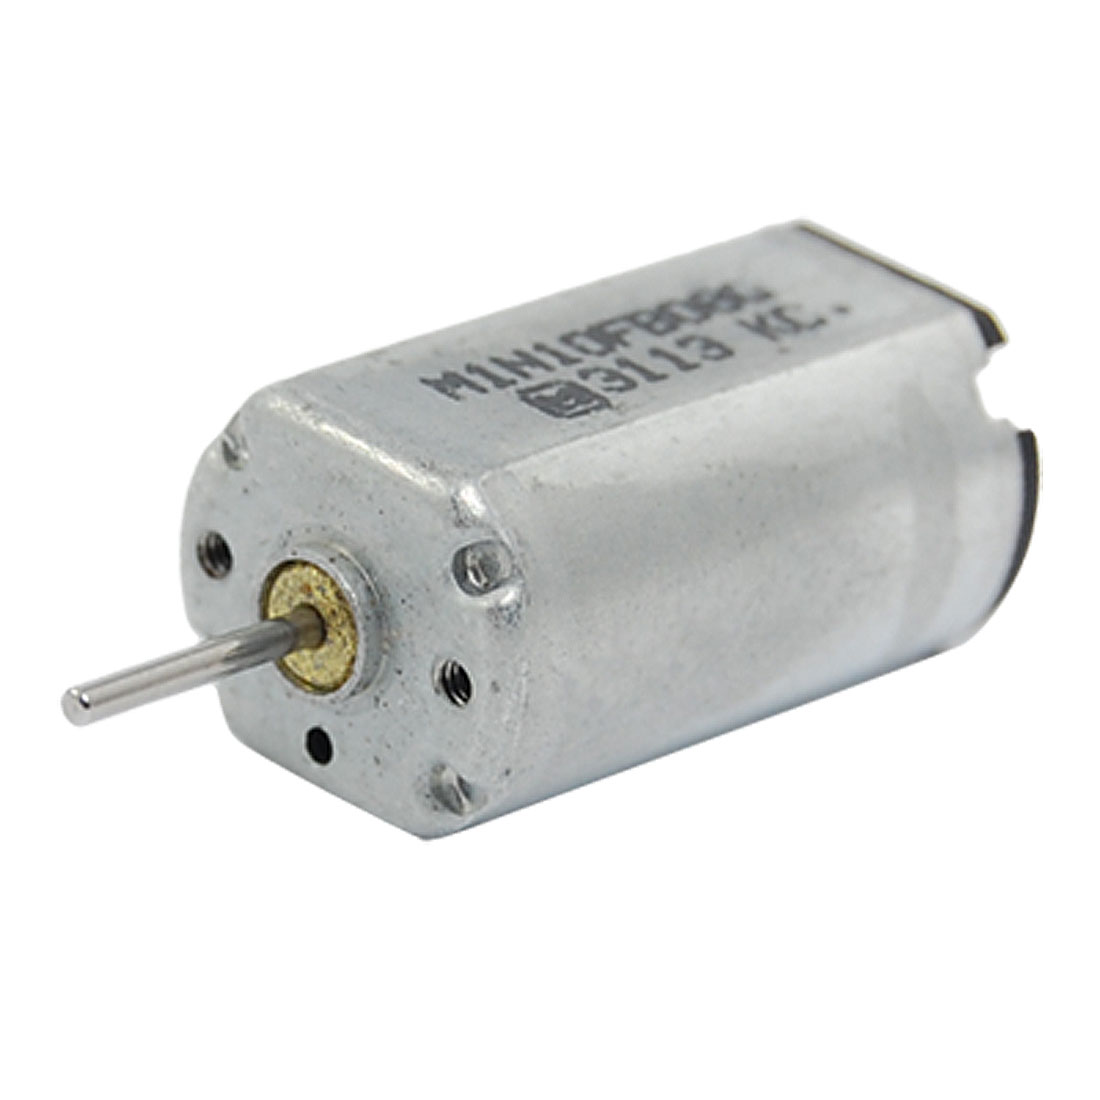 Repairing-Part-1mm-Shaft-6V-9000RPM-0-01A-DC-Mini-Motor-for-DIY-Toys